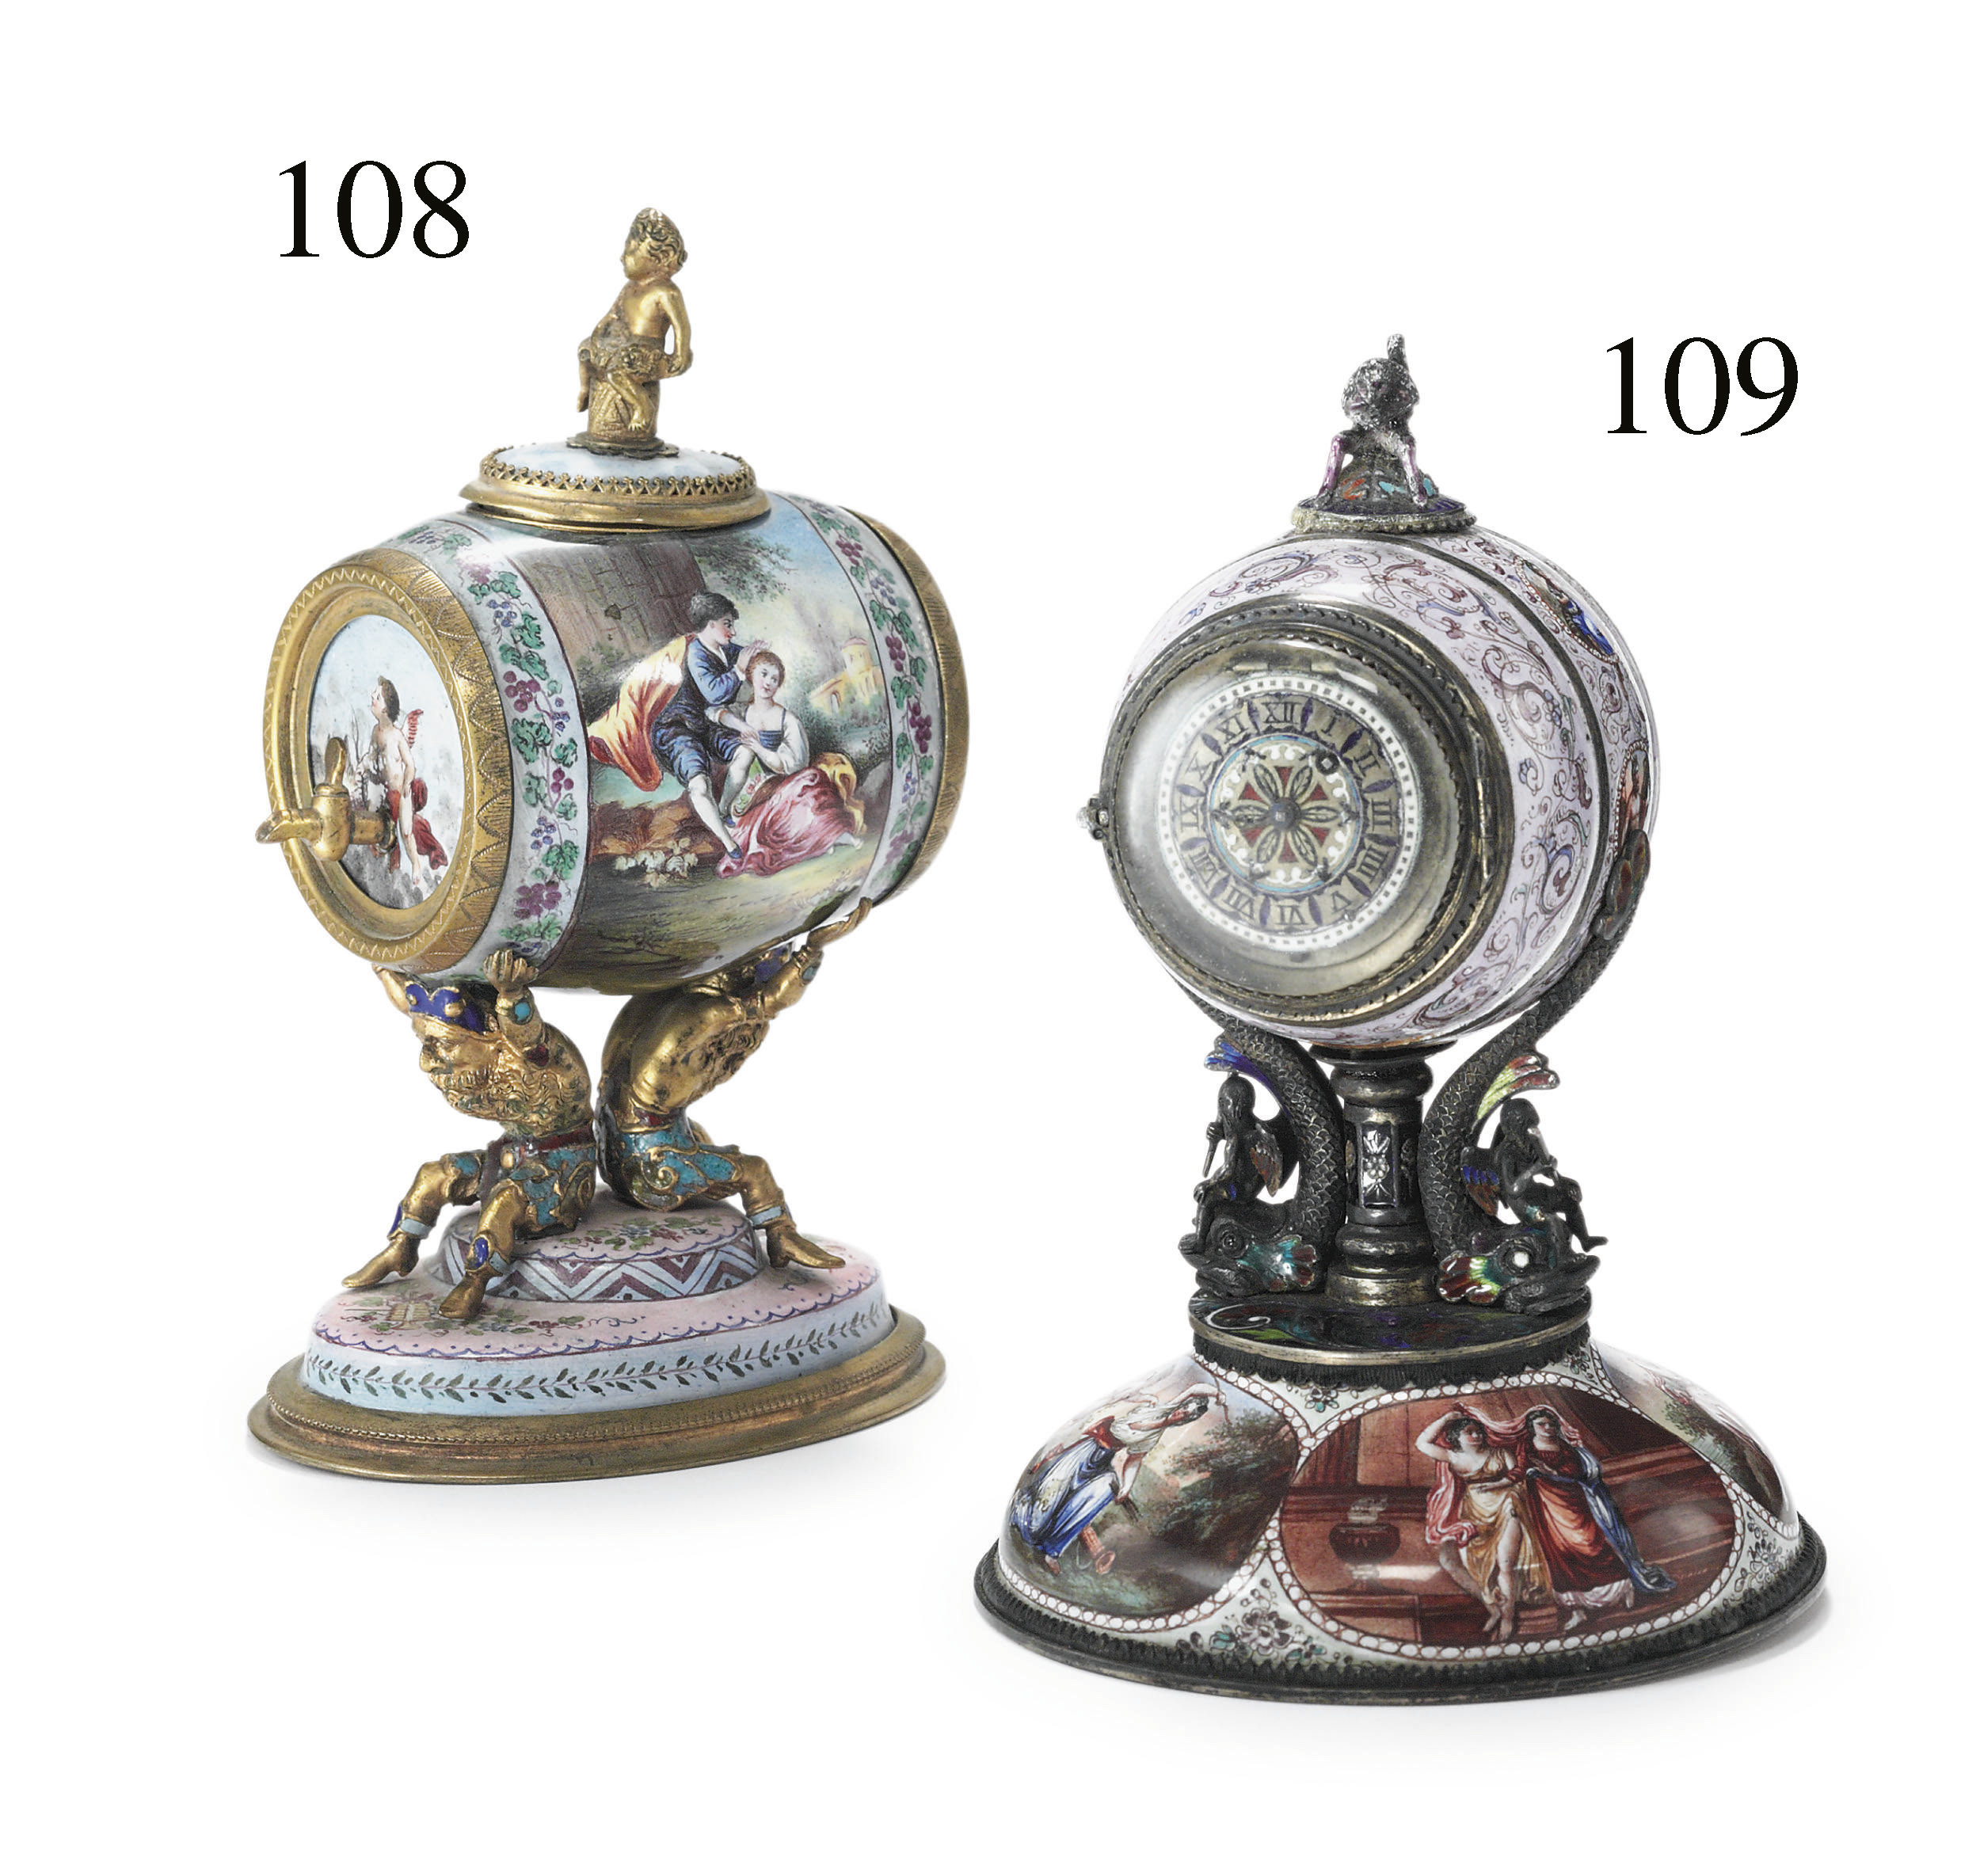 A VIENNESE SILVER AND ENAMEL B